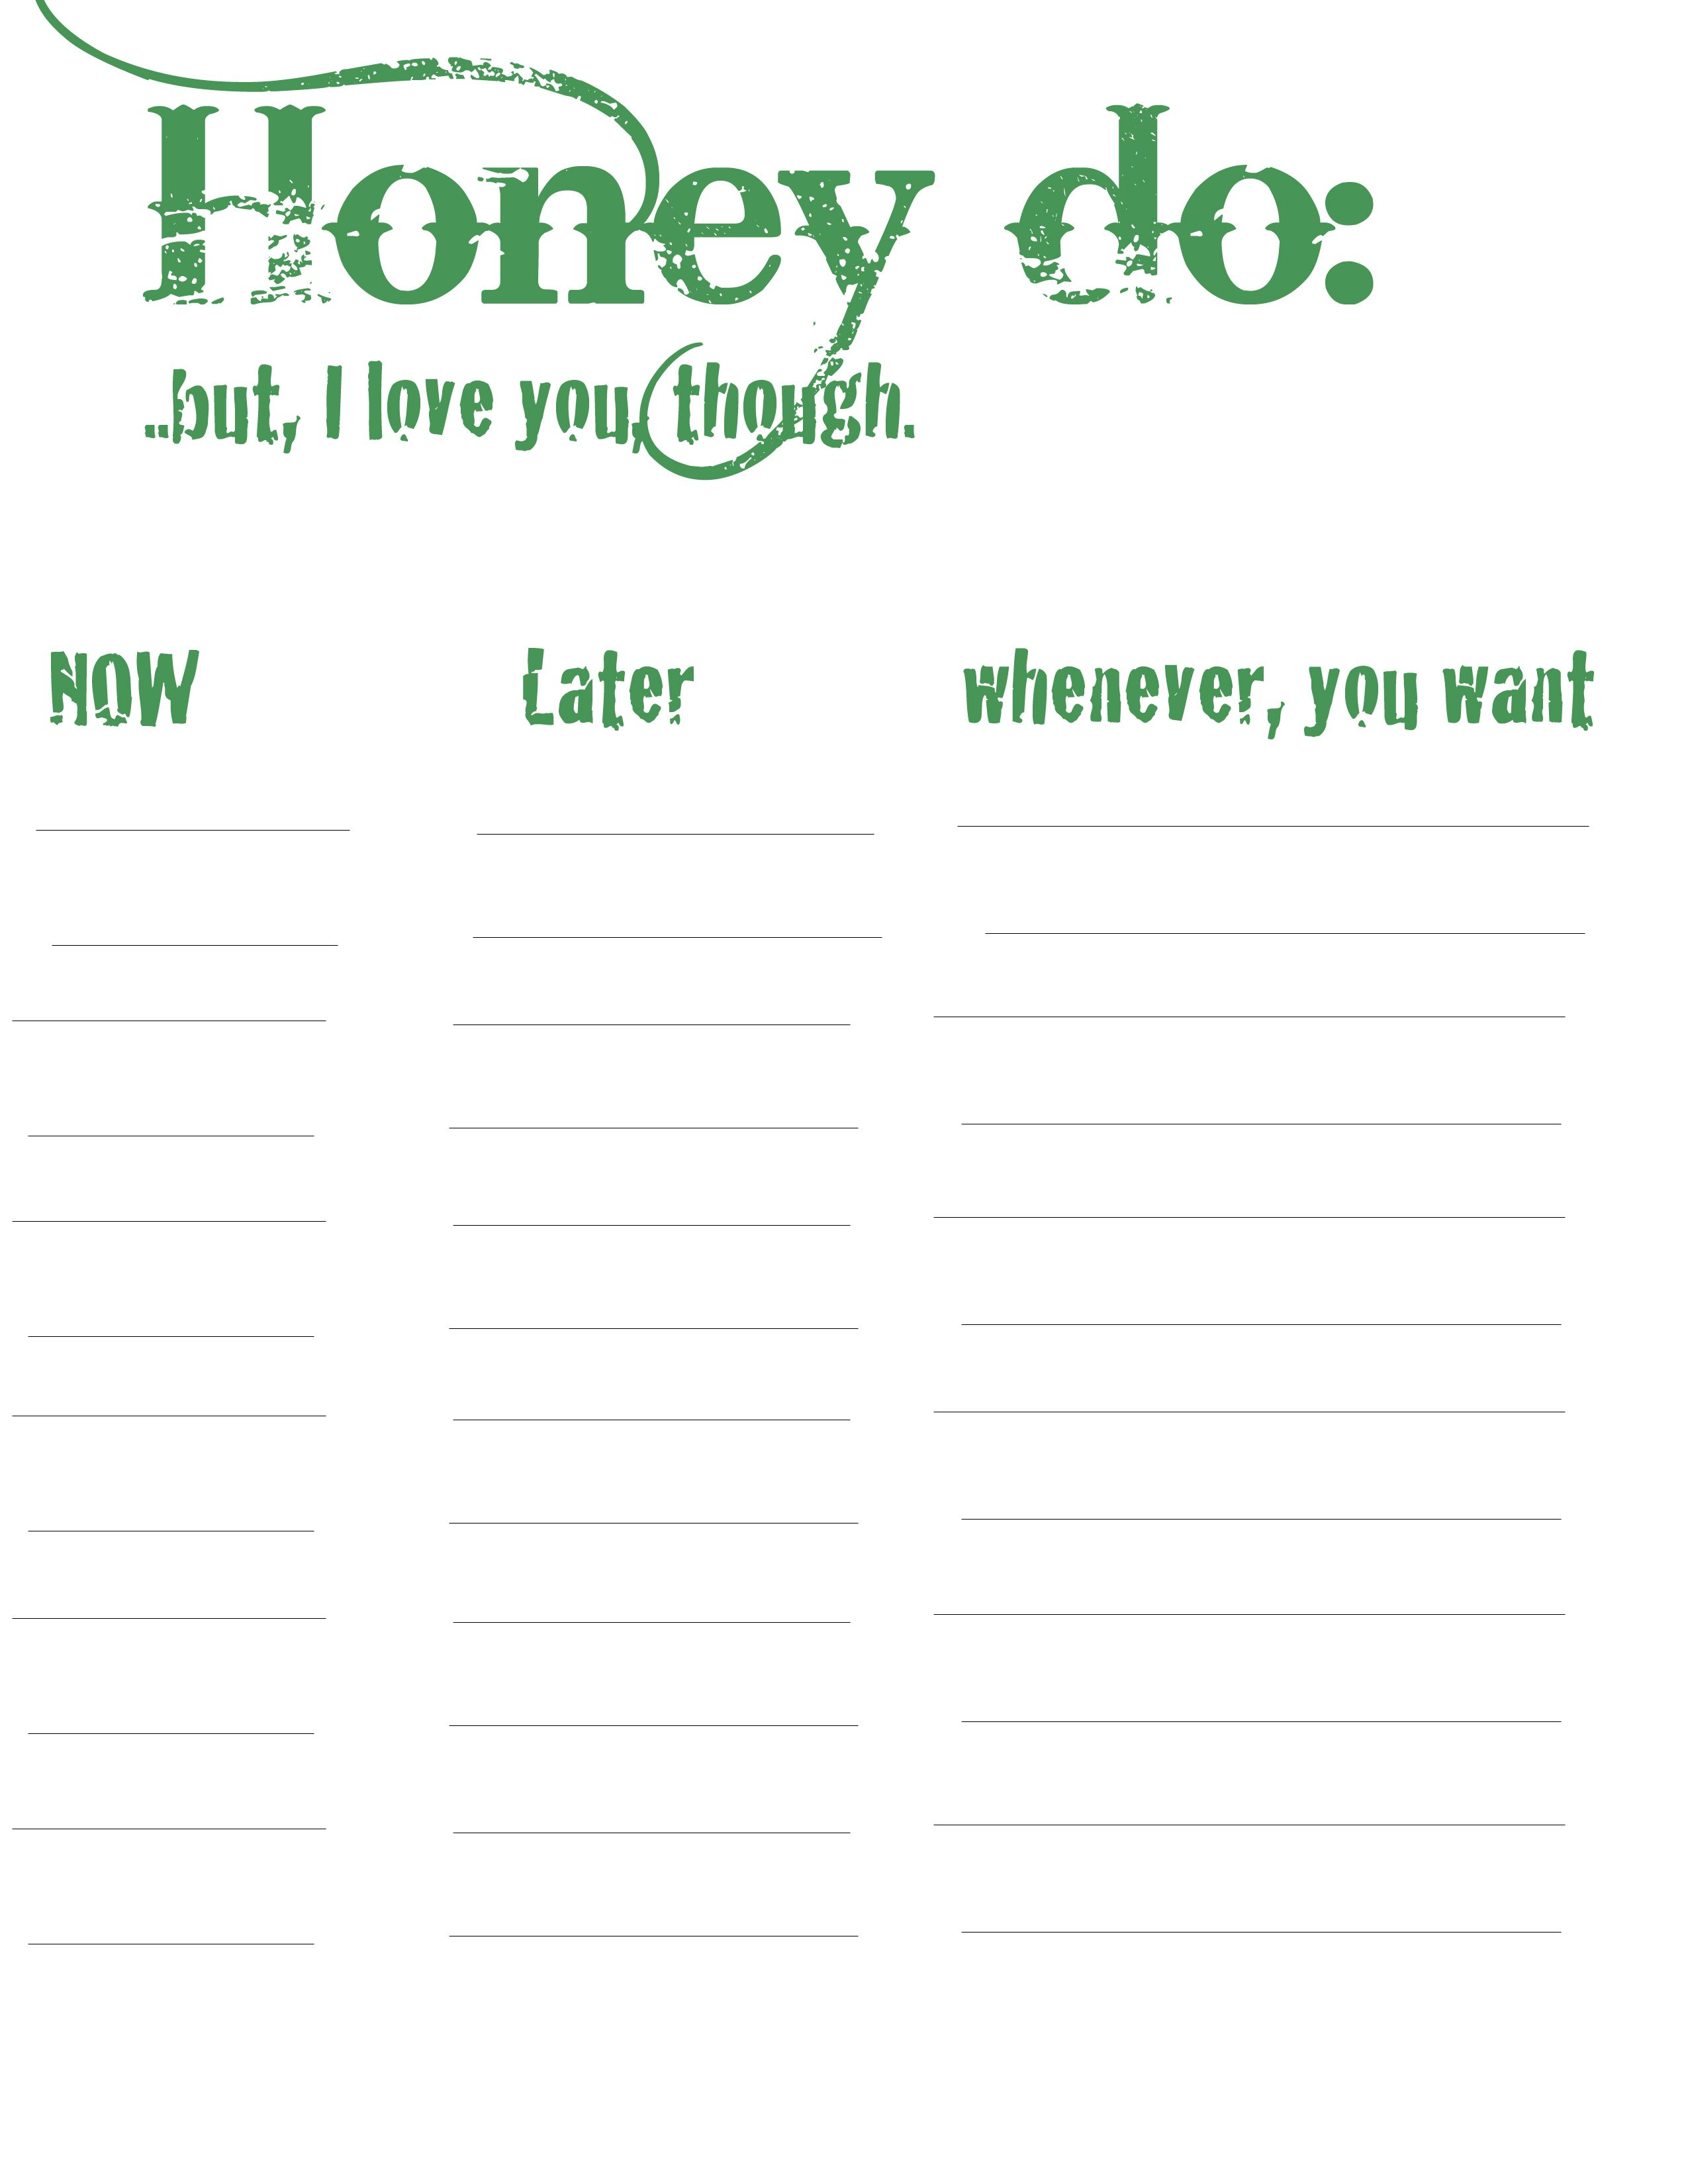 image relating to Honey Do List Printable identify Honey do listing! Incorporate A Class: Collectively